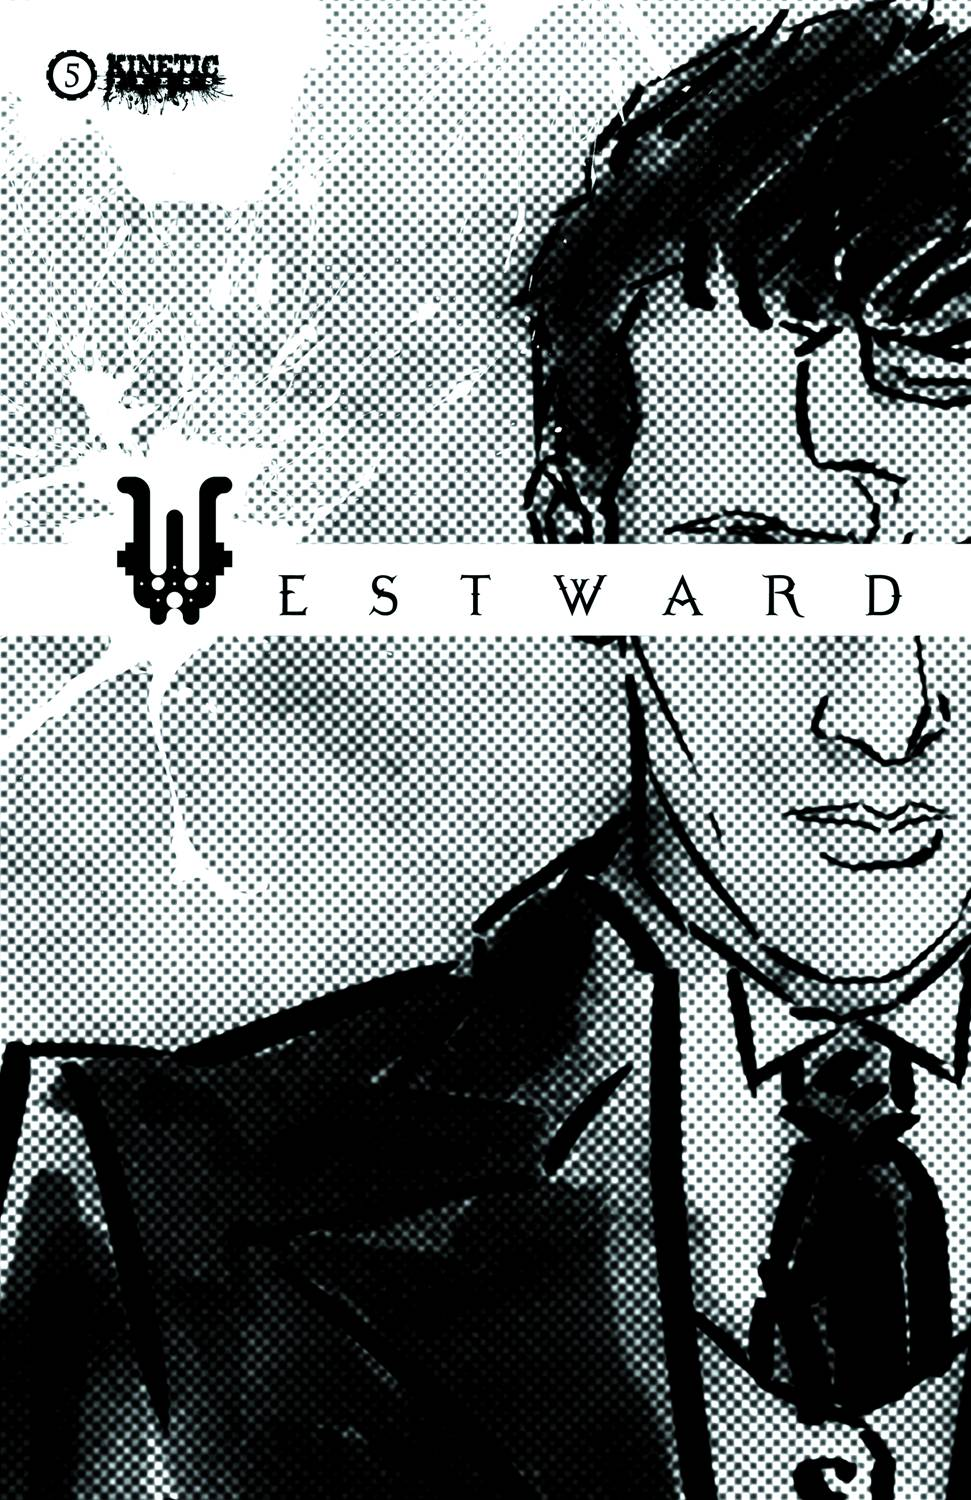 Westward #5 (of 10) (Signed)